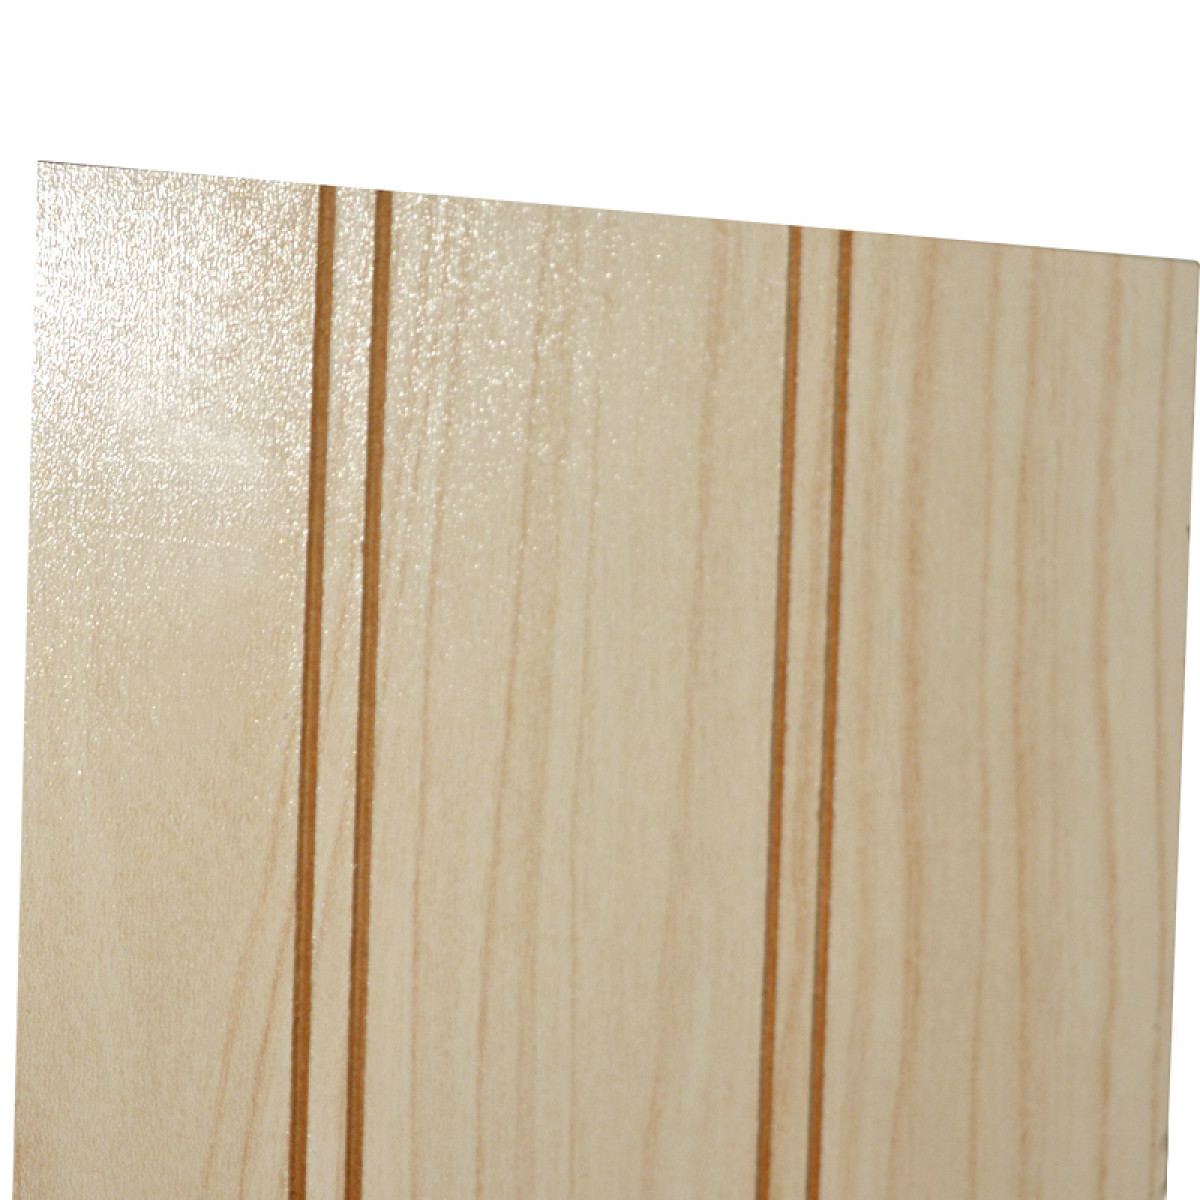 MDF RANURADO PINTADO MAPLE 1C 5.5MM 1.52X2.44MT